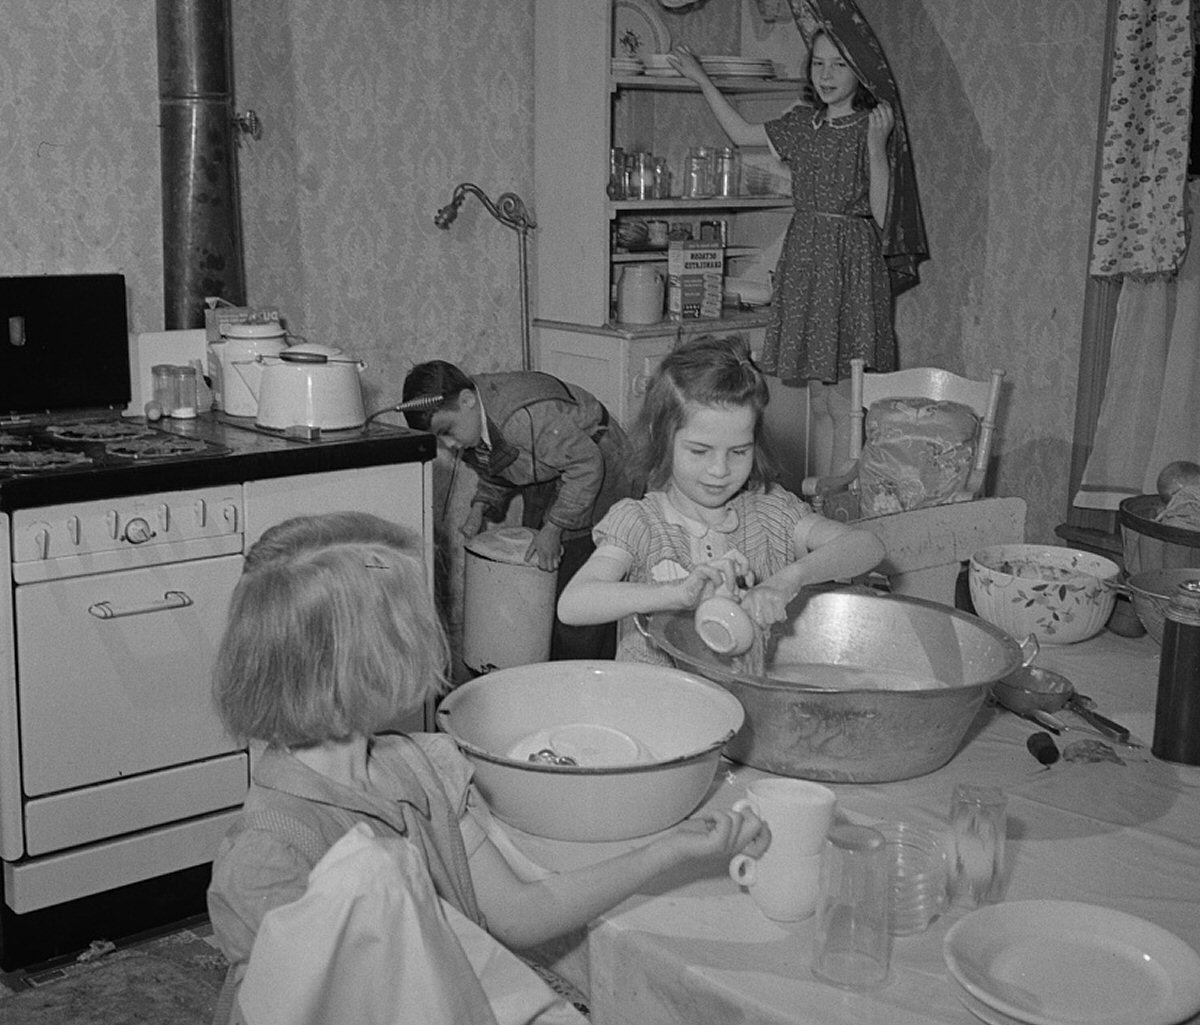 Children Helping with Housework